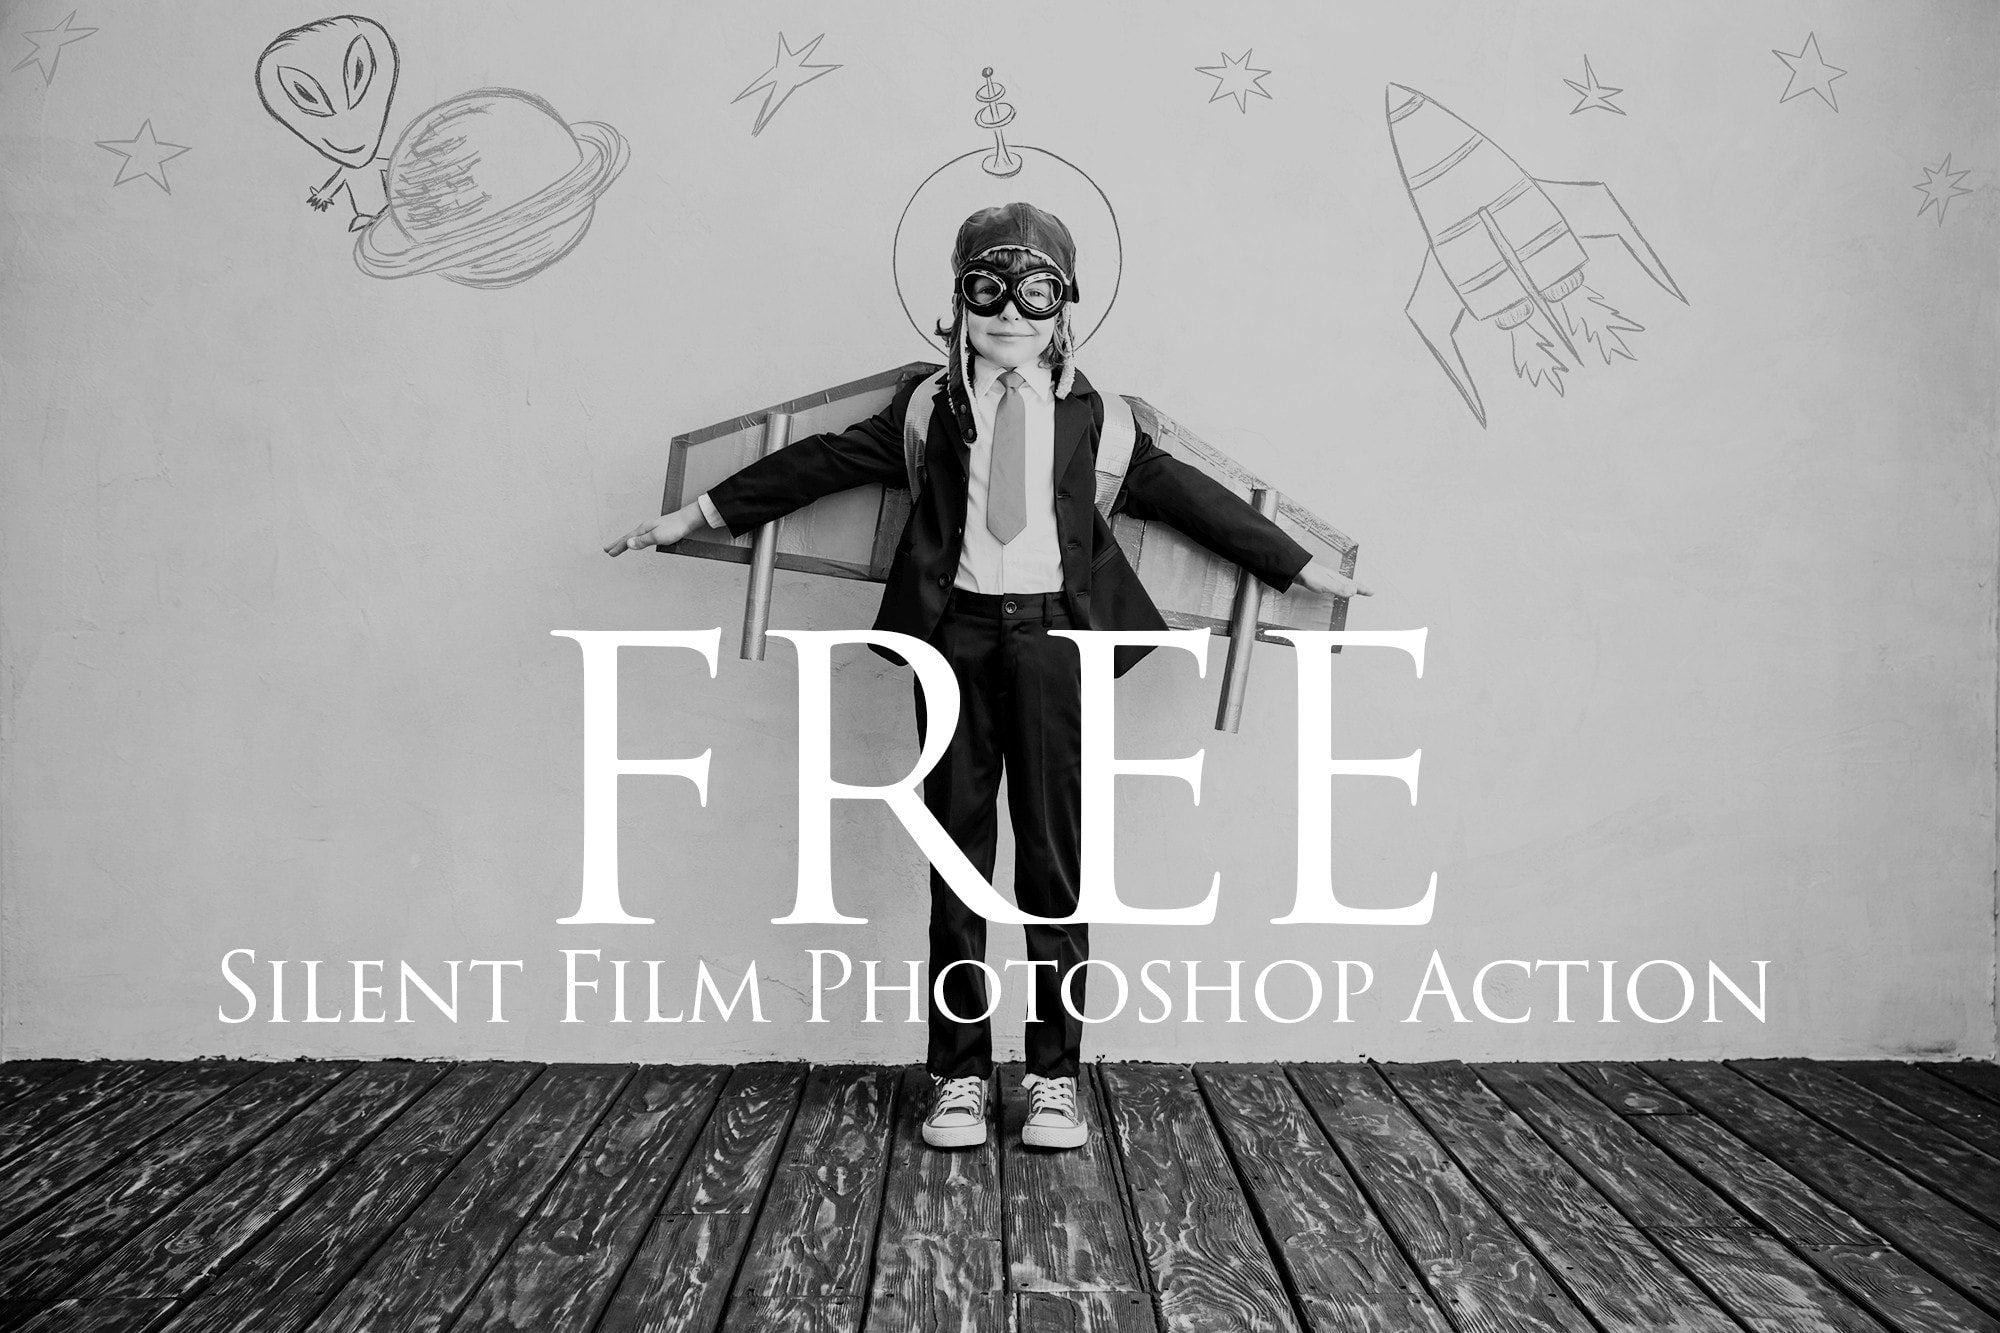 Silent film photoshop action free uplift photoshop actions photoshop overlays and lightroom presets